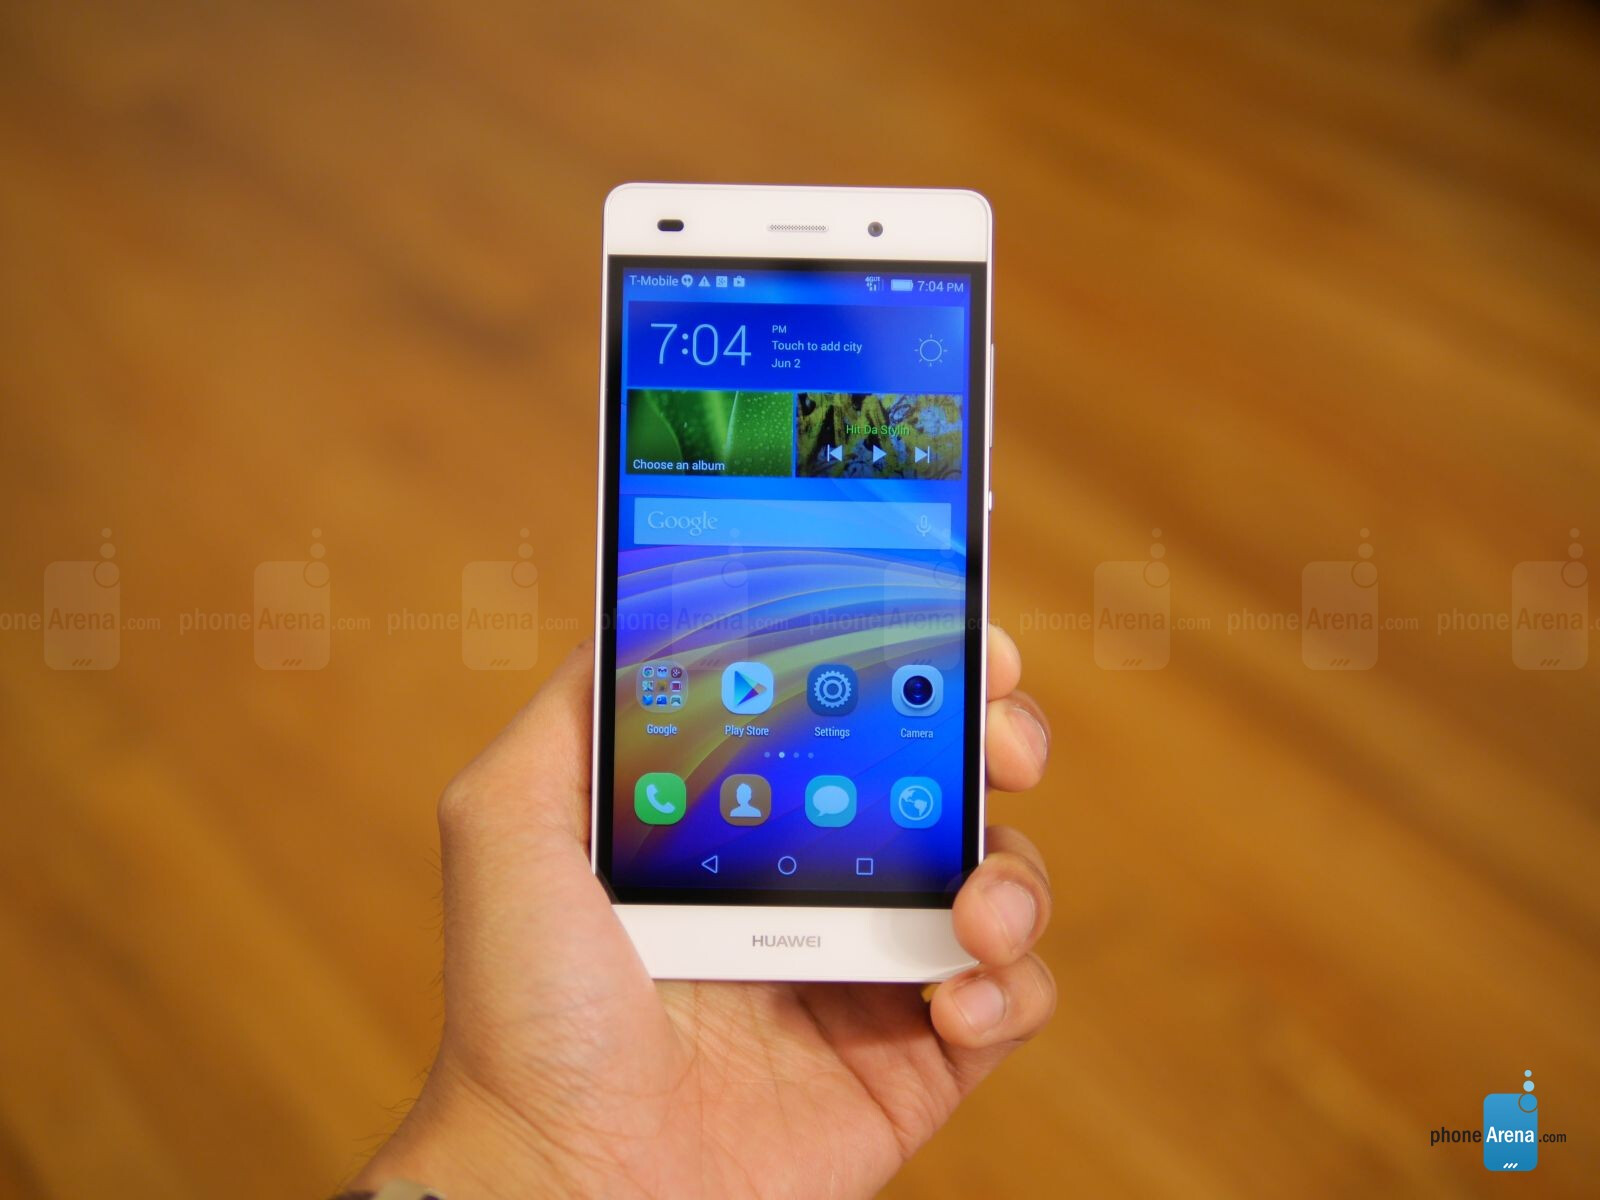 huawei p8 lite hands on phonearena reviews. Black Bedroom Furniture Sets. Home Design Ideas